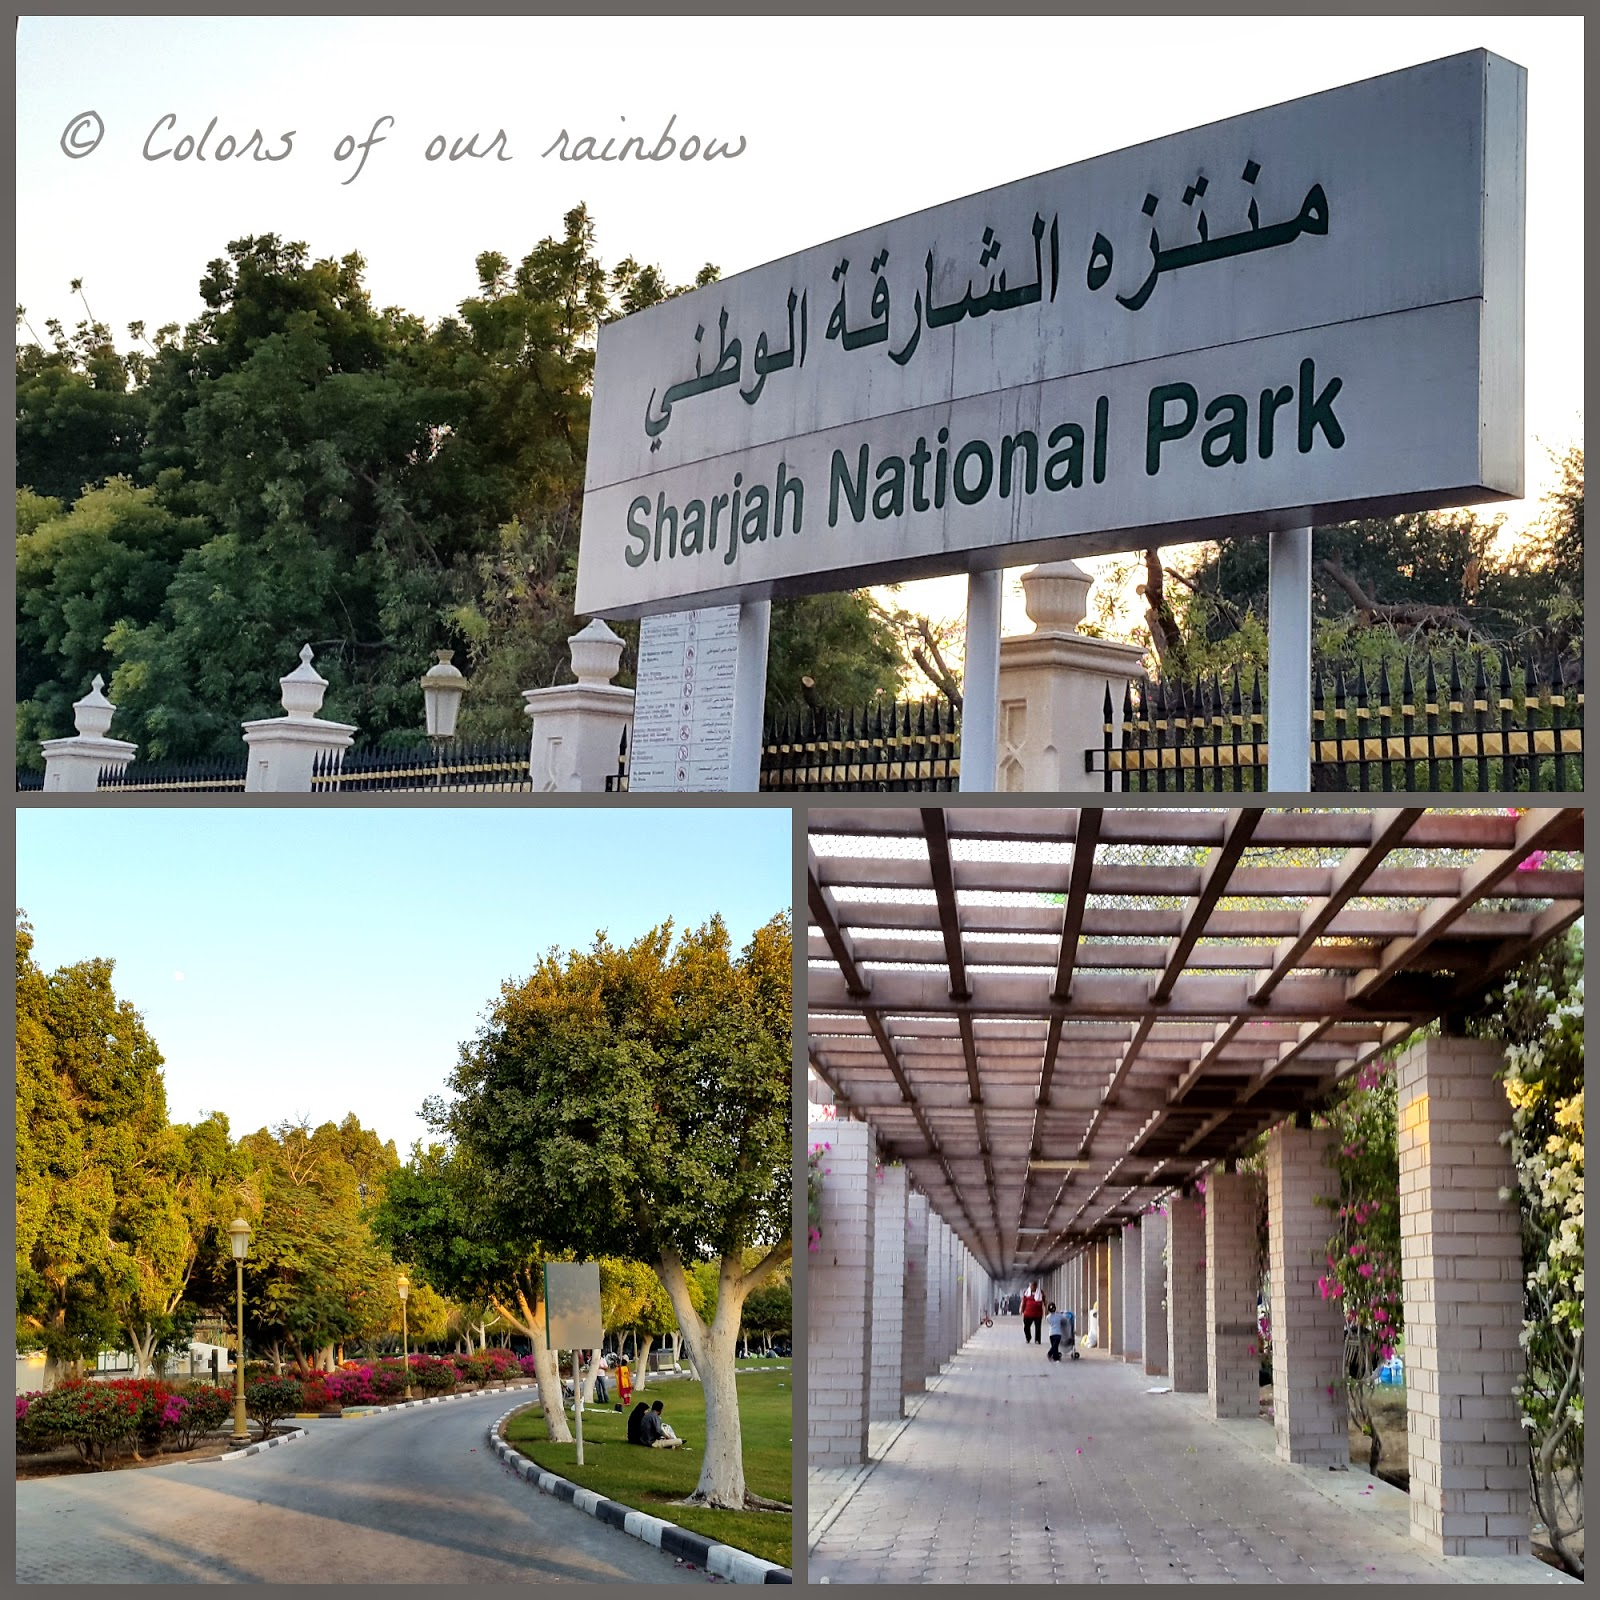 Sharjah National Park